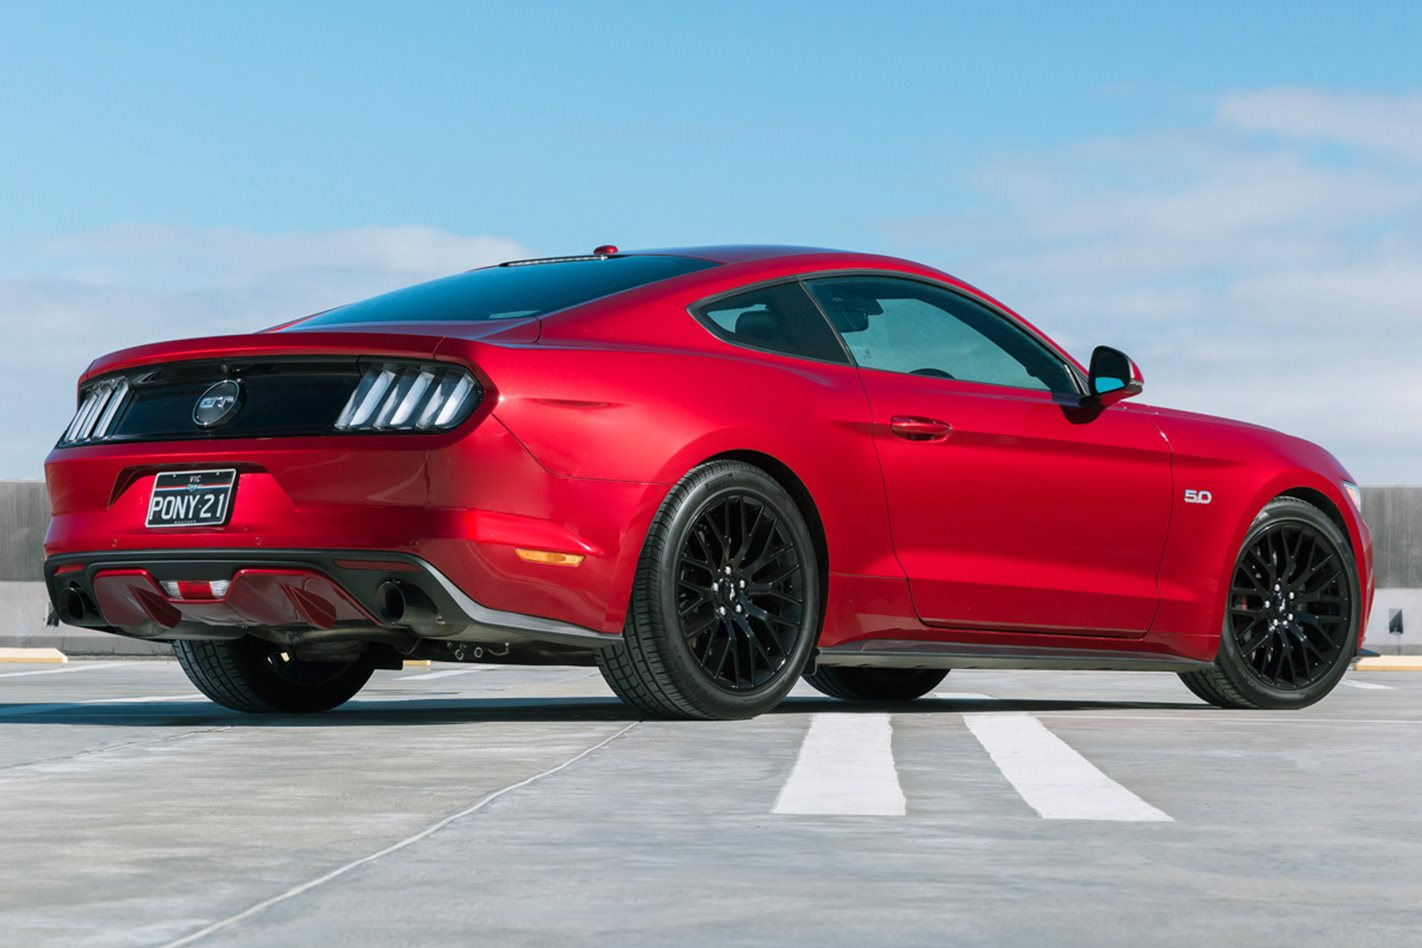 2017 Ford Mustang PP rear facing